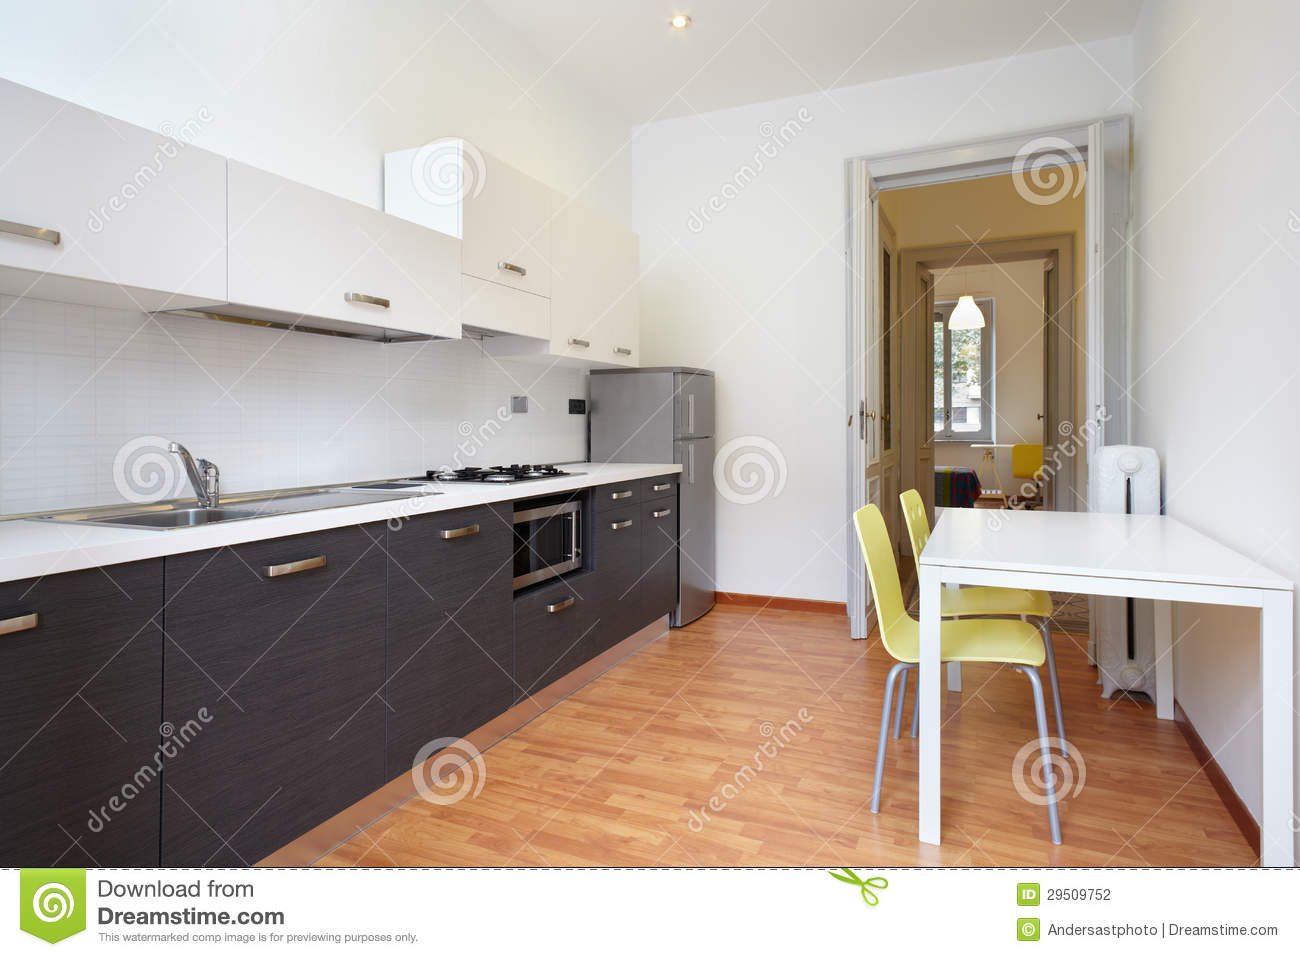 Cuisine moderne appartement pr l vement d for Cuisine design appartement